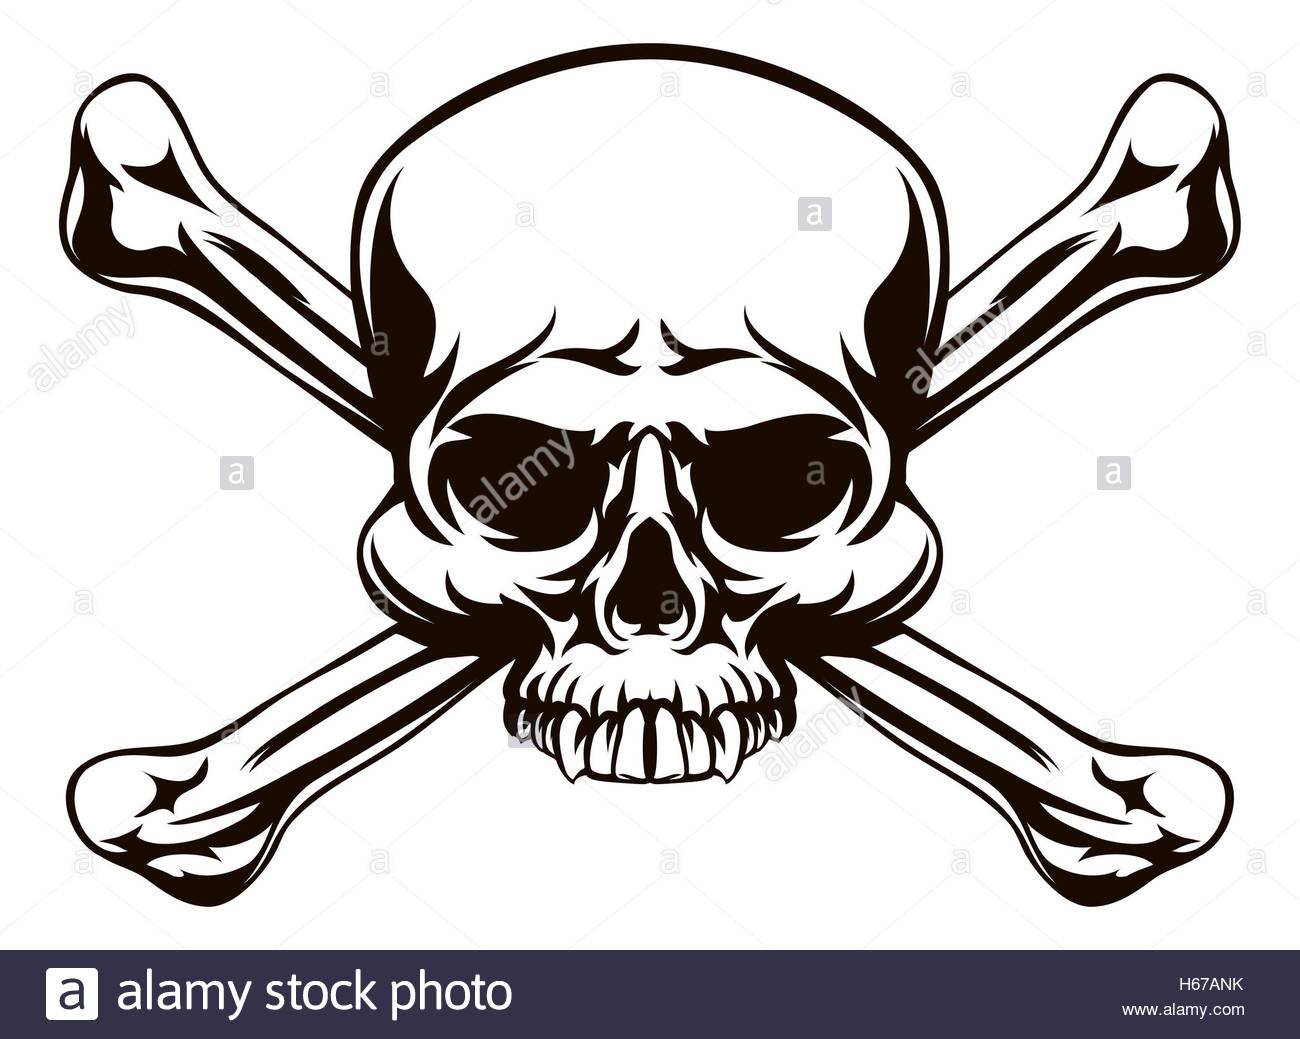 1300x1039 A Skull And Cross Bones Drawing Like A Pirates Jolly Roger